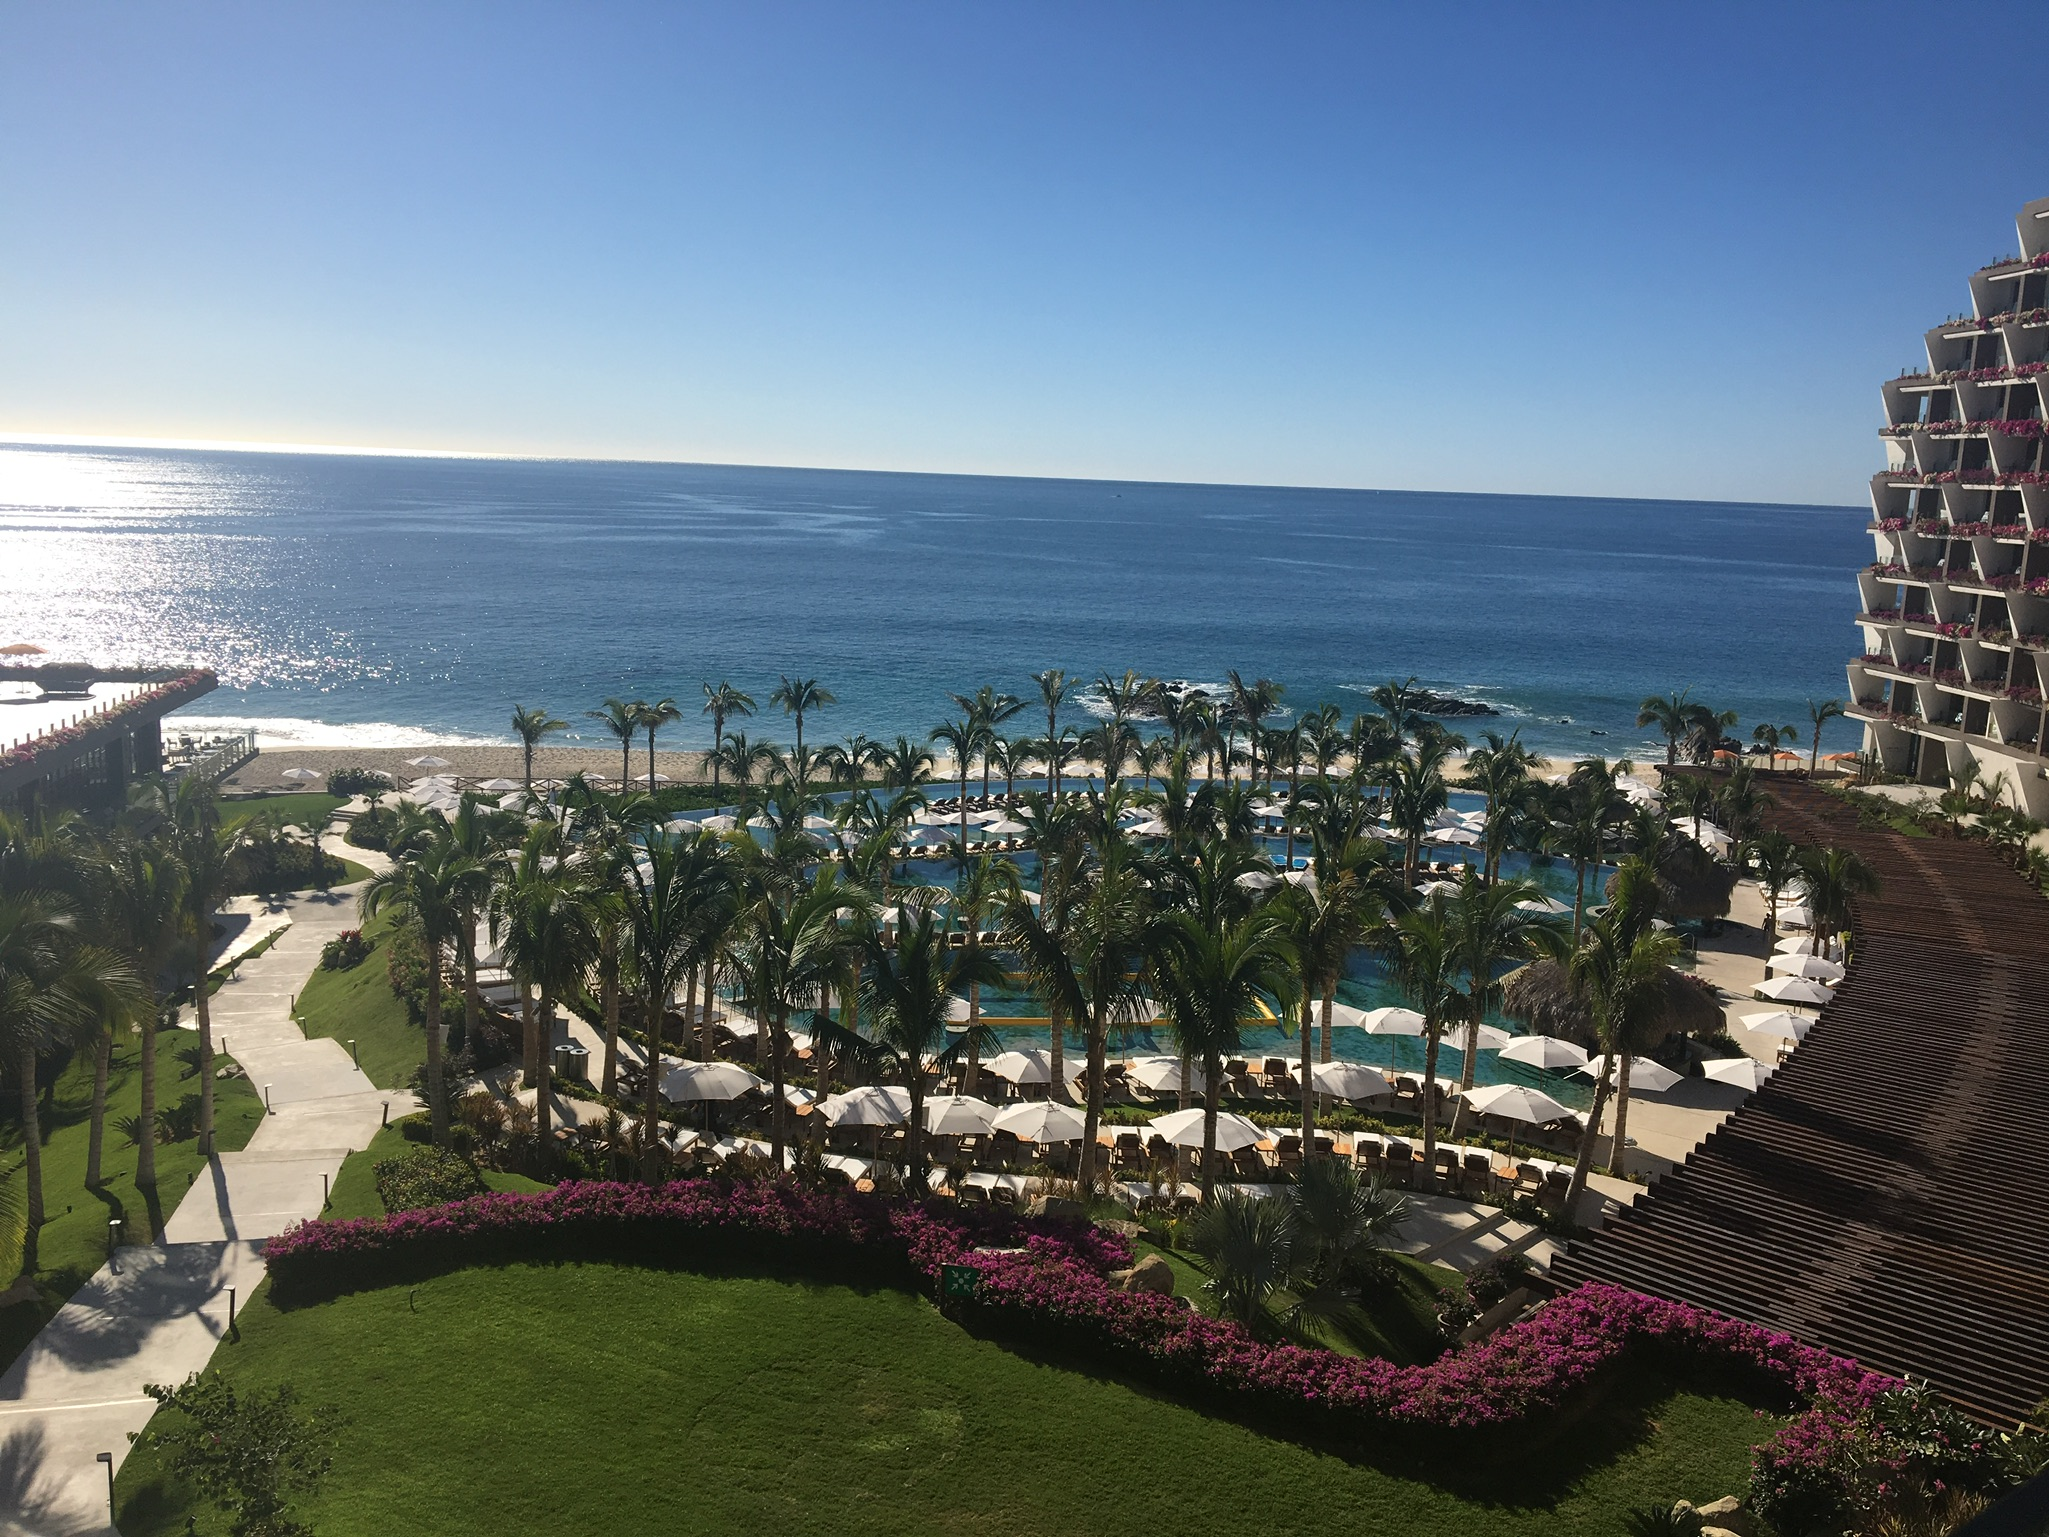 Toss any pre-concieved notions you have about all-inclusive resorts OUT THE WINDOW and take a closer look at Grand Velas!